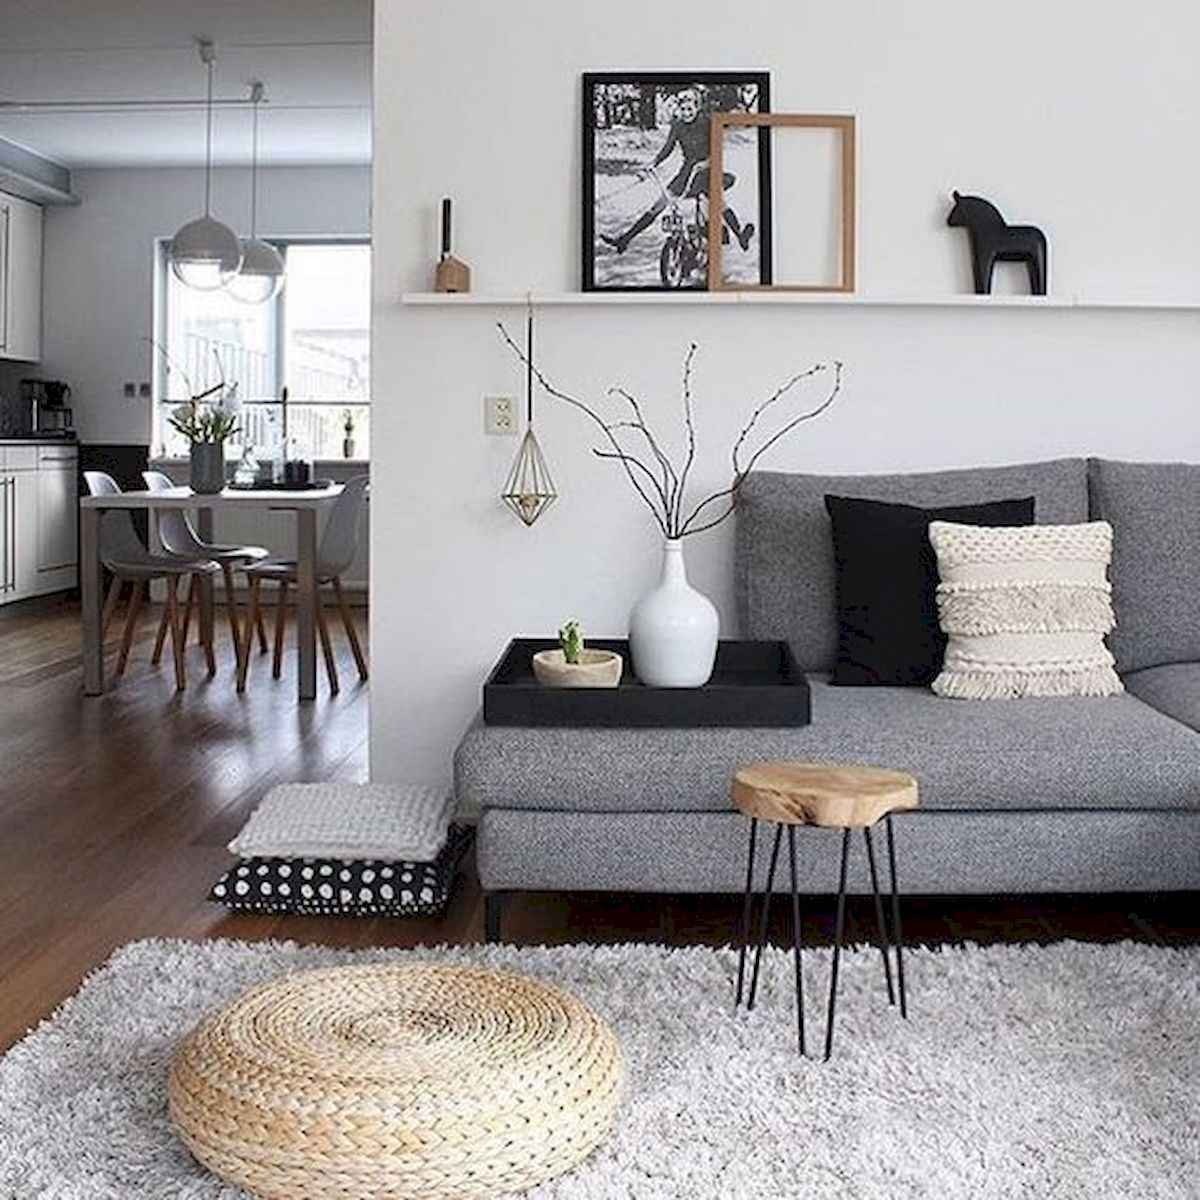 70 Stunning Grey White Black Living Room Decor Ideas And Remodel (68)